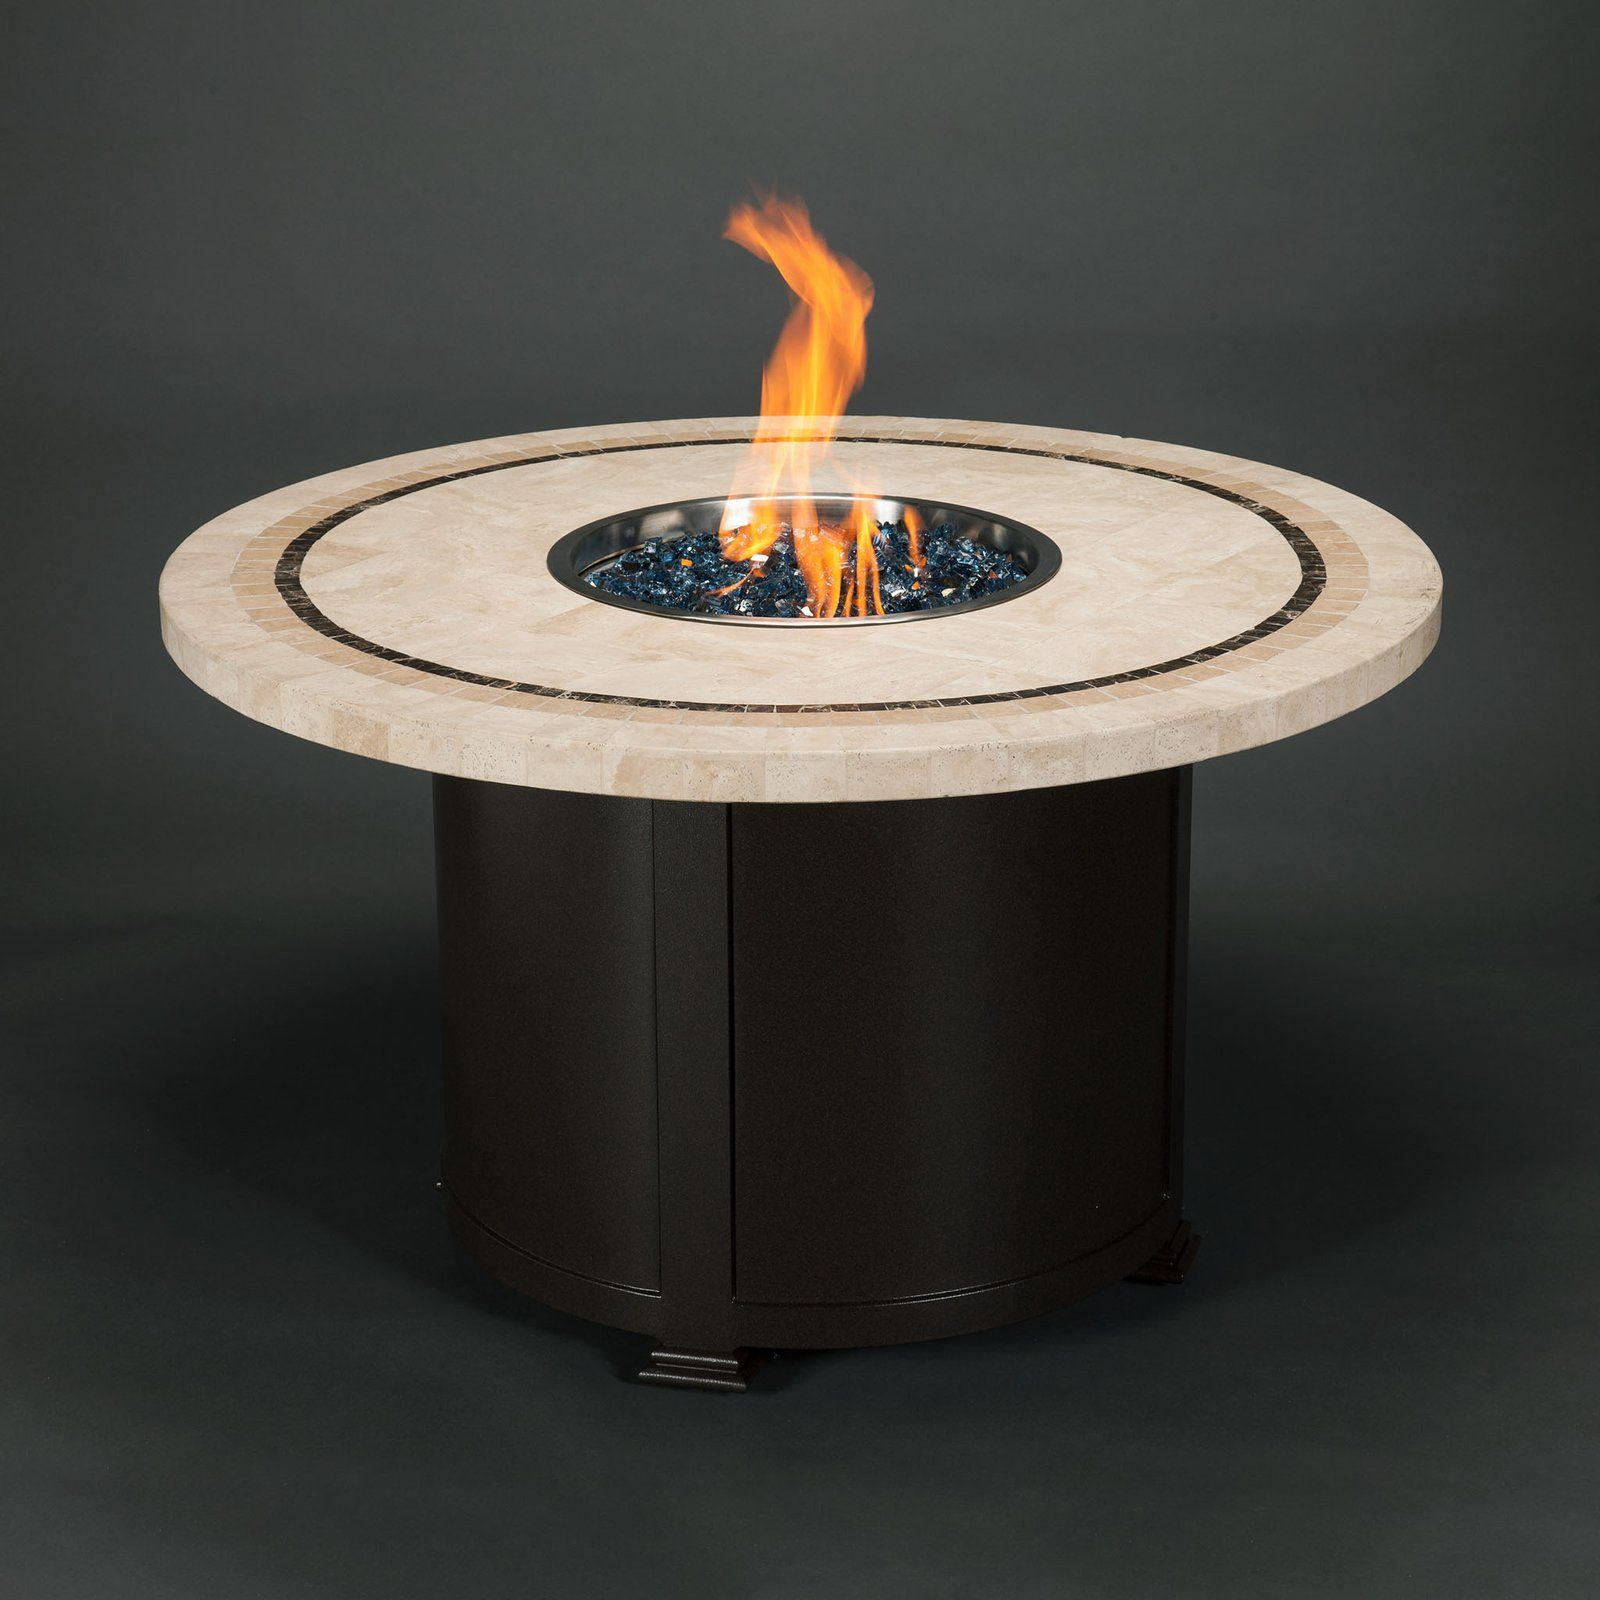 benner round fire table with beige travertine tile fire table